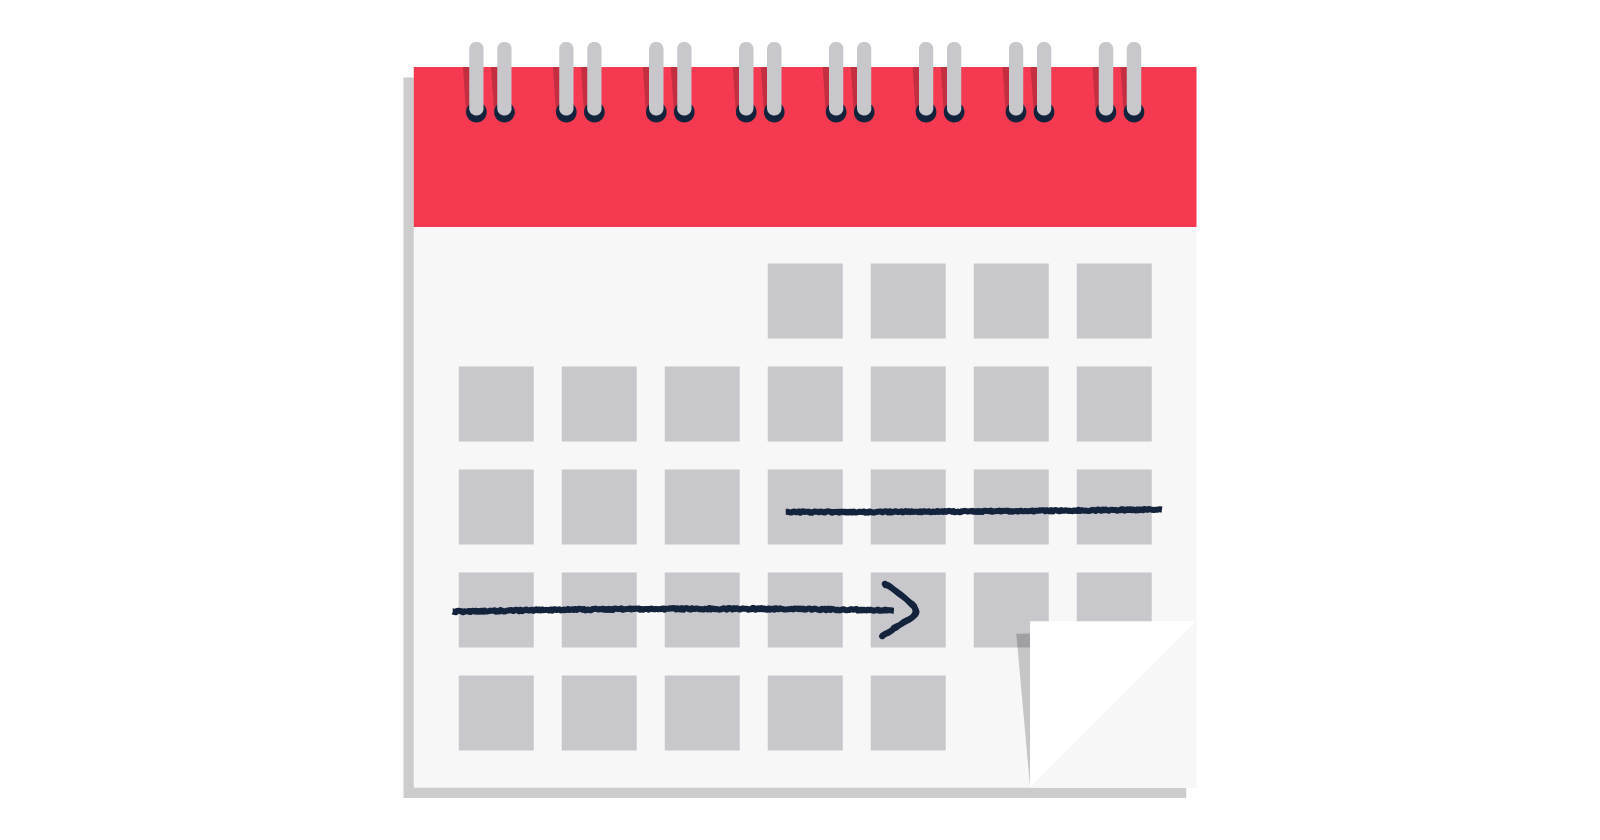 Screenshot of a calendar